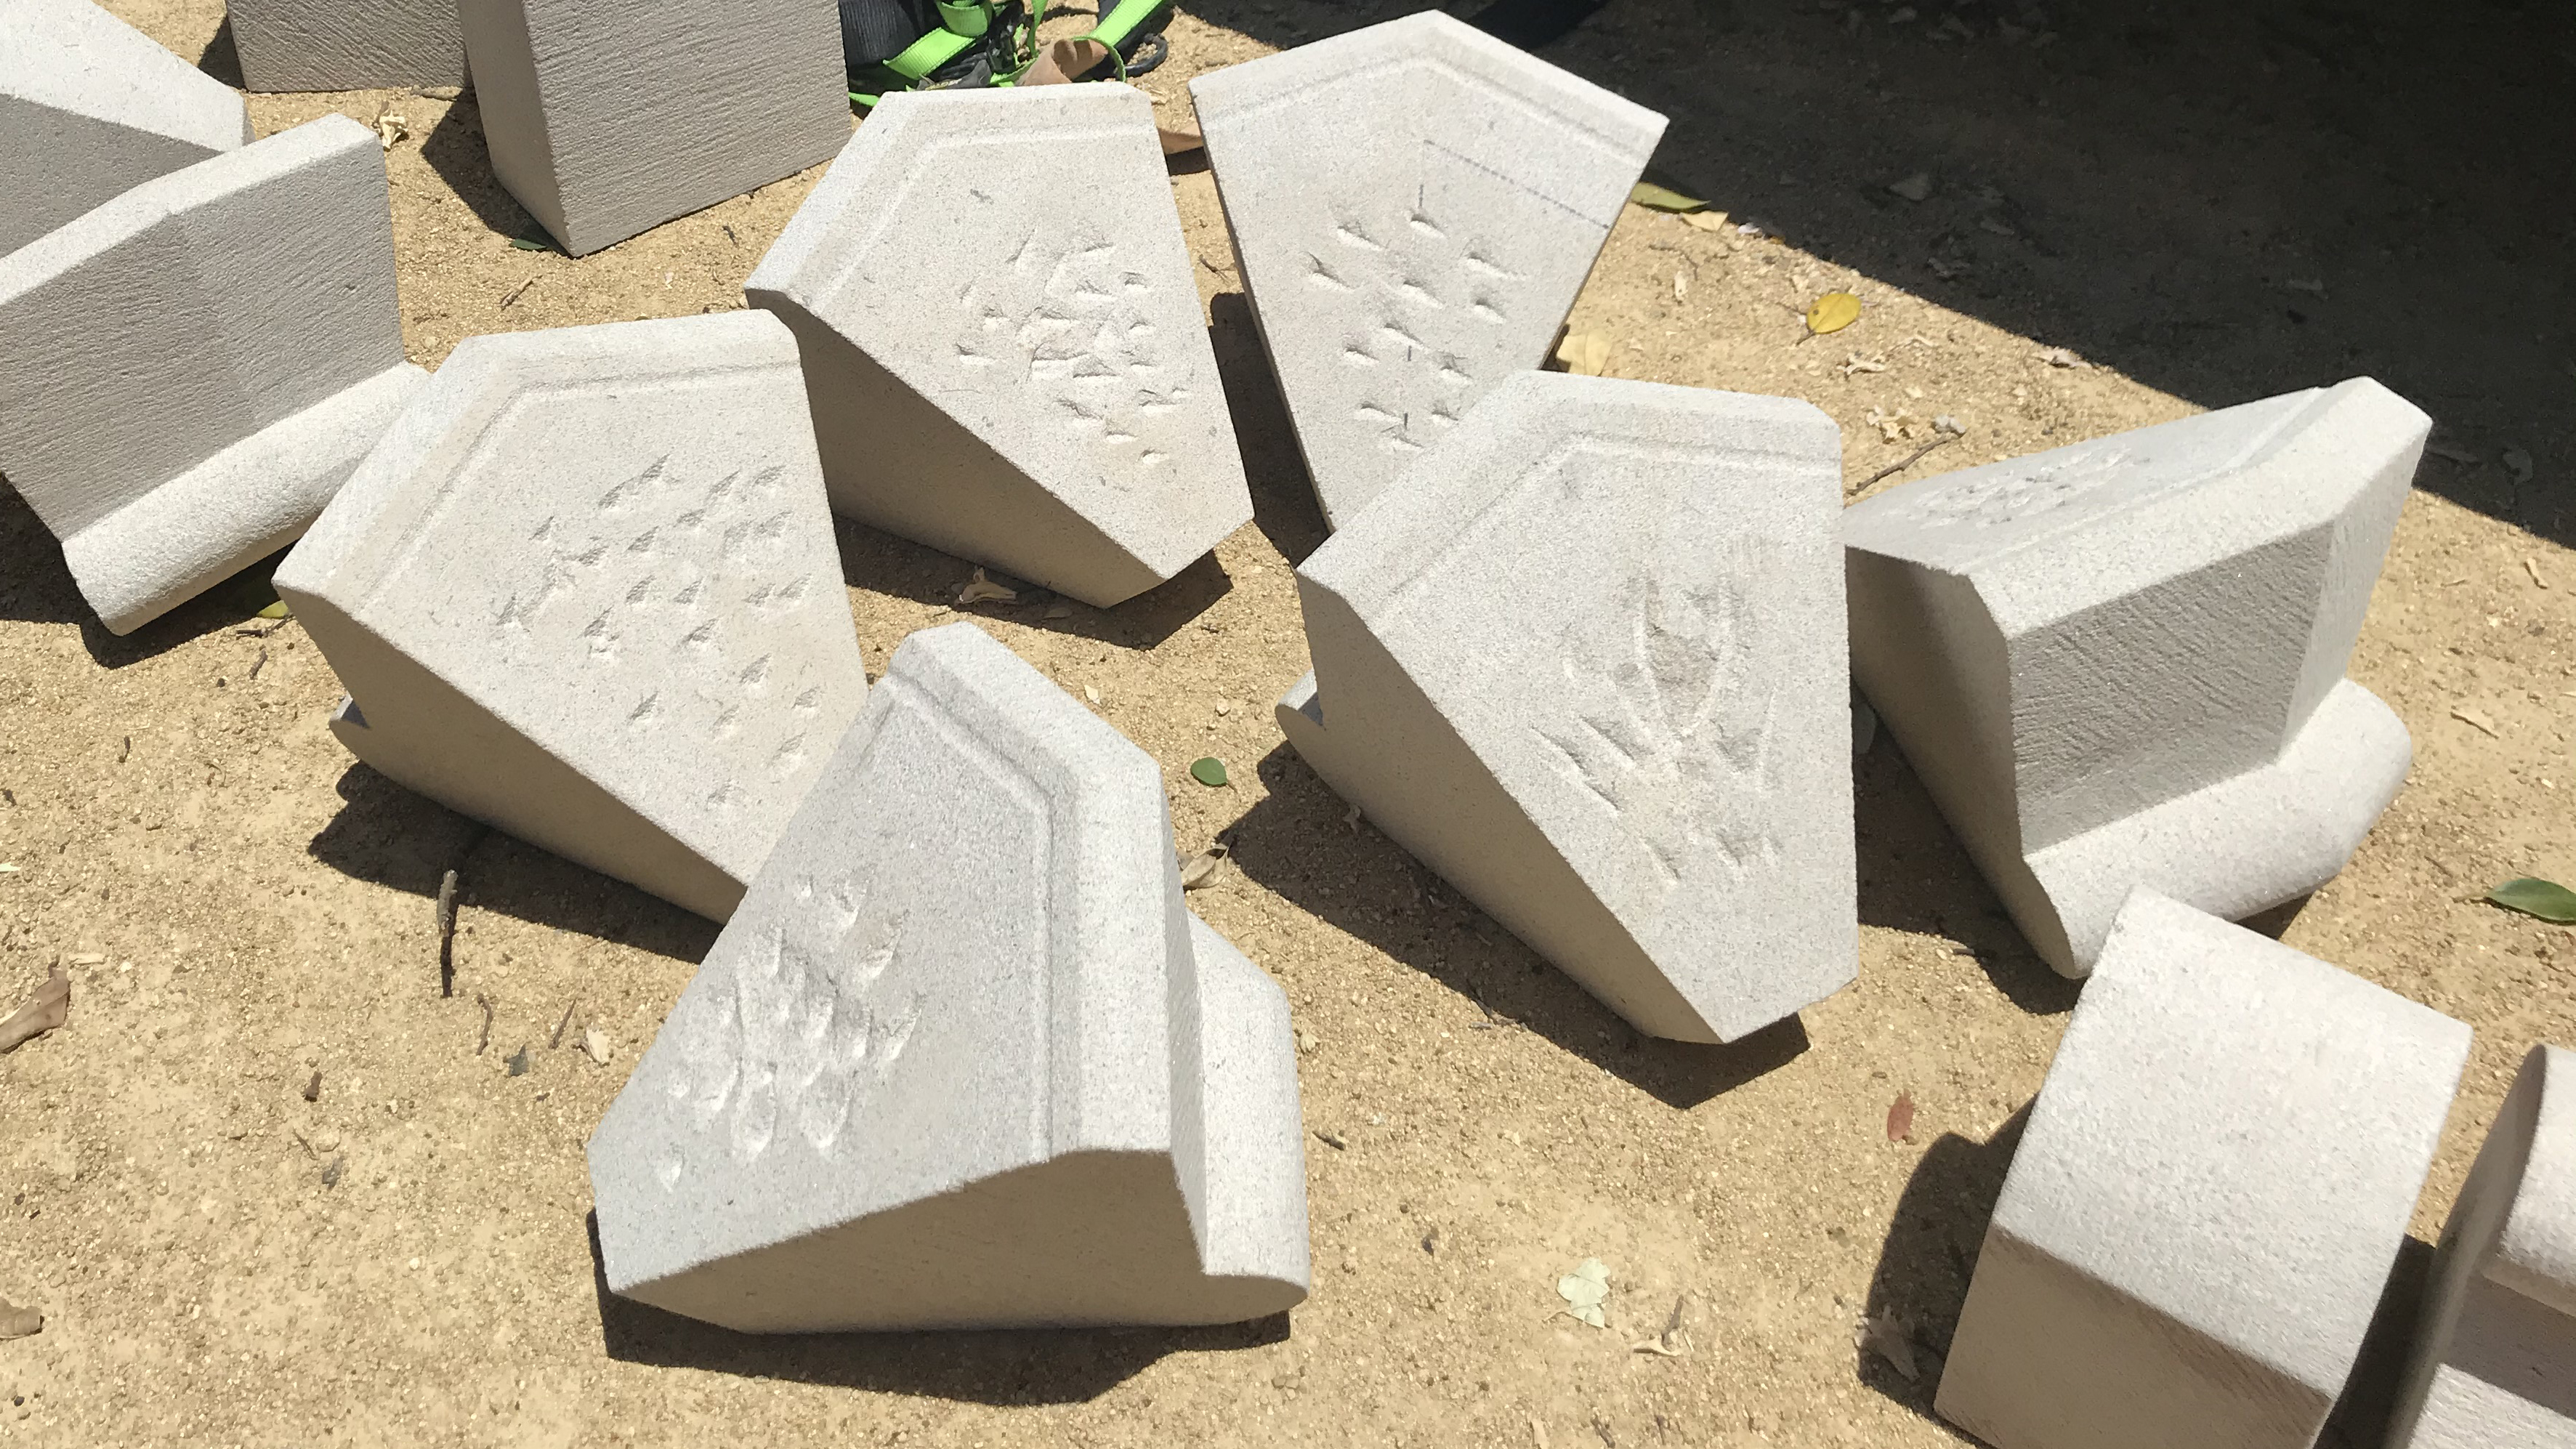 Pieces of cut and shaped sandstone on ground.